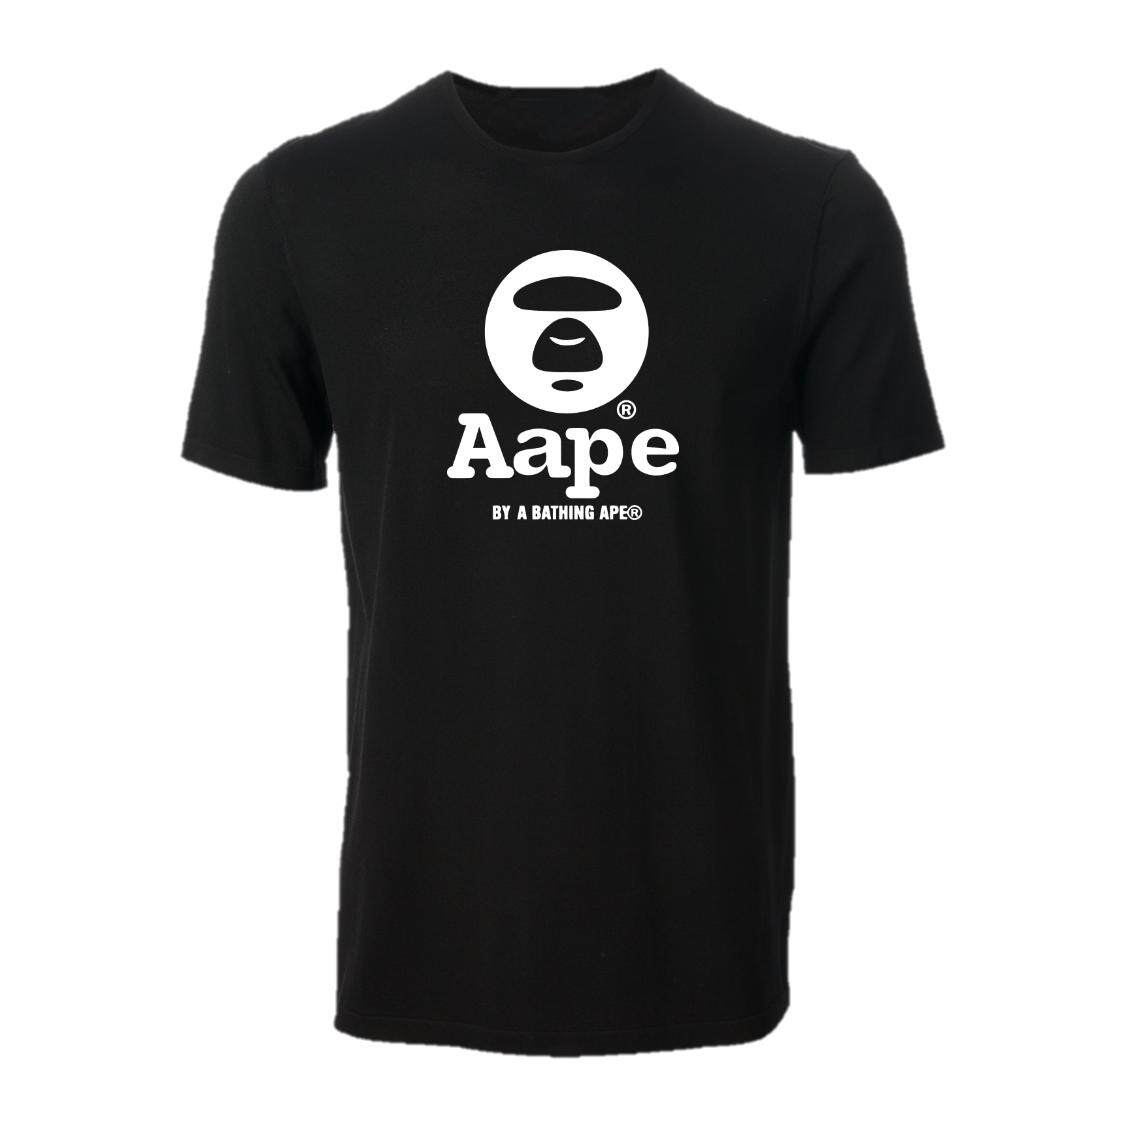 85d295b22 Aape - Buy Aape at Best Price in Malaysia   www.lazada.com.my